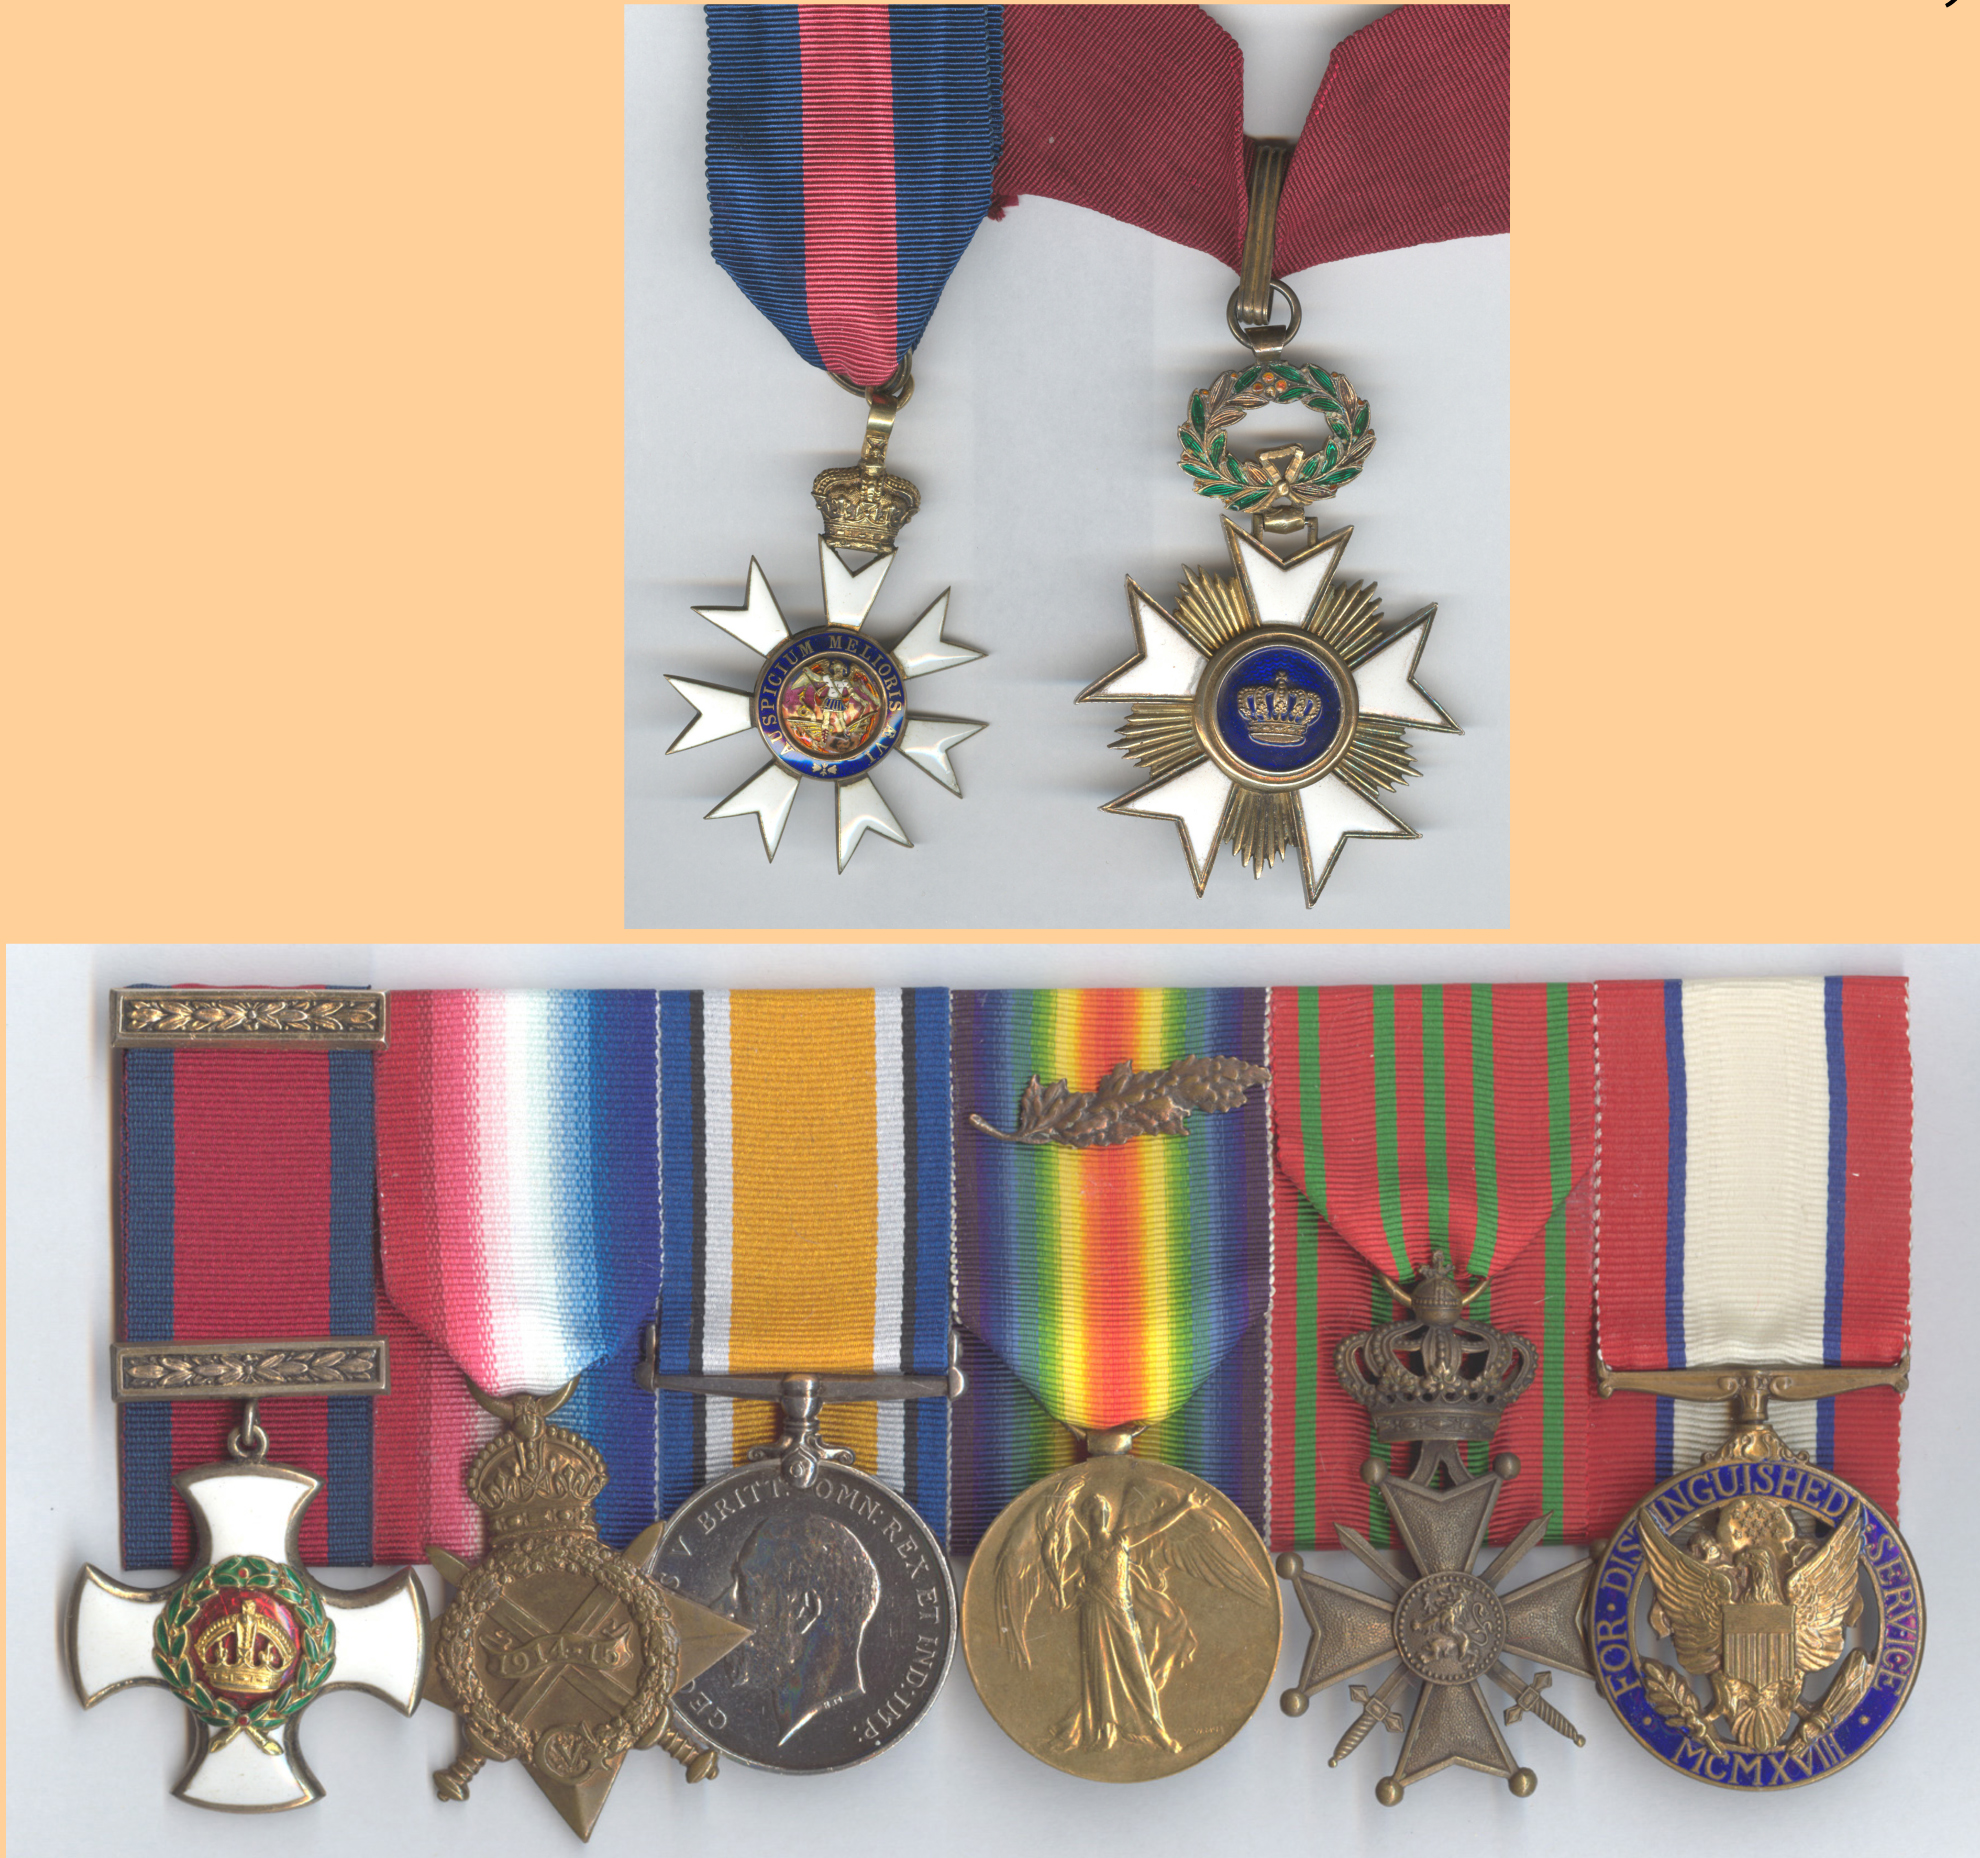 Pritchard medals